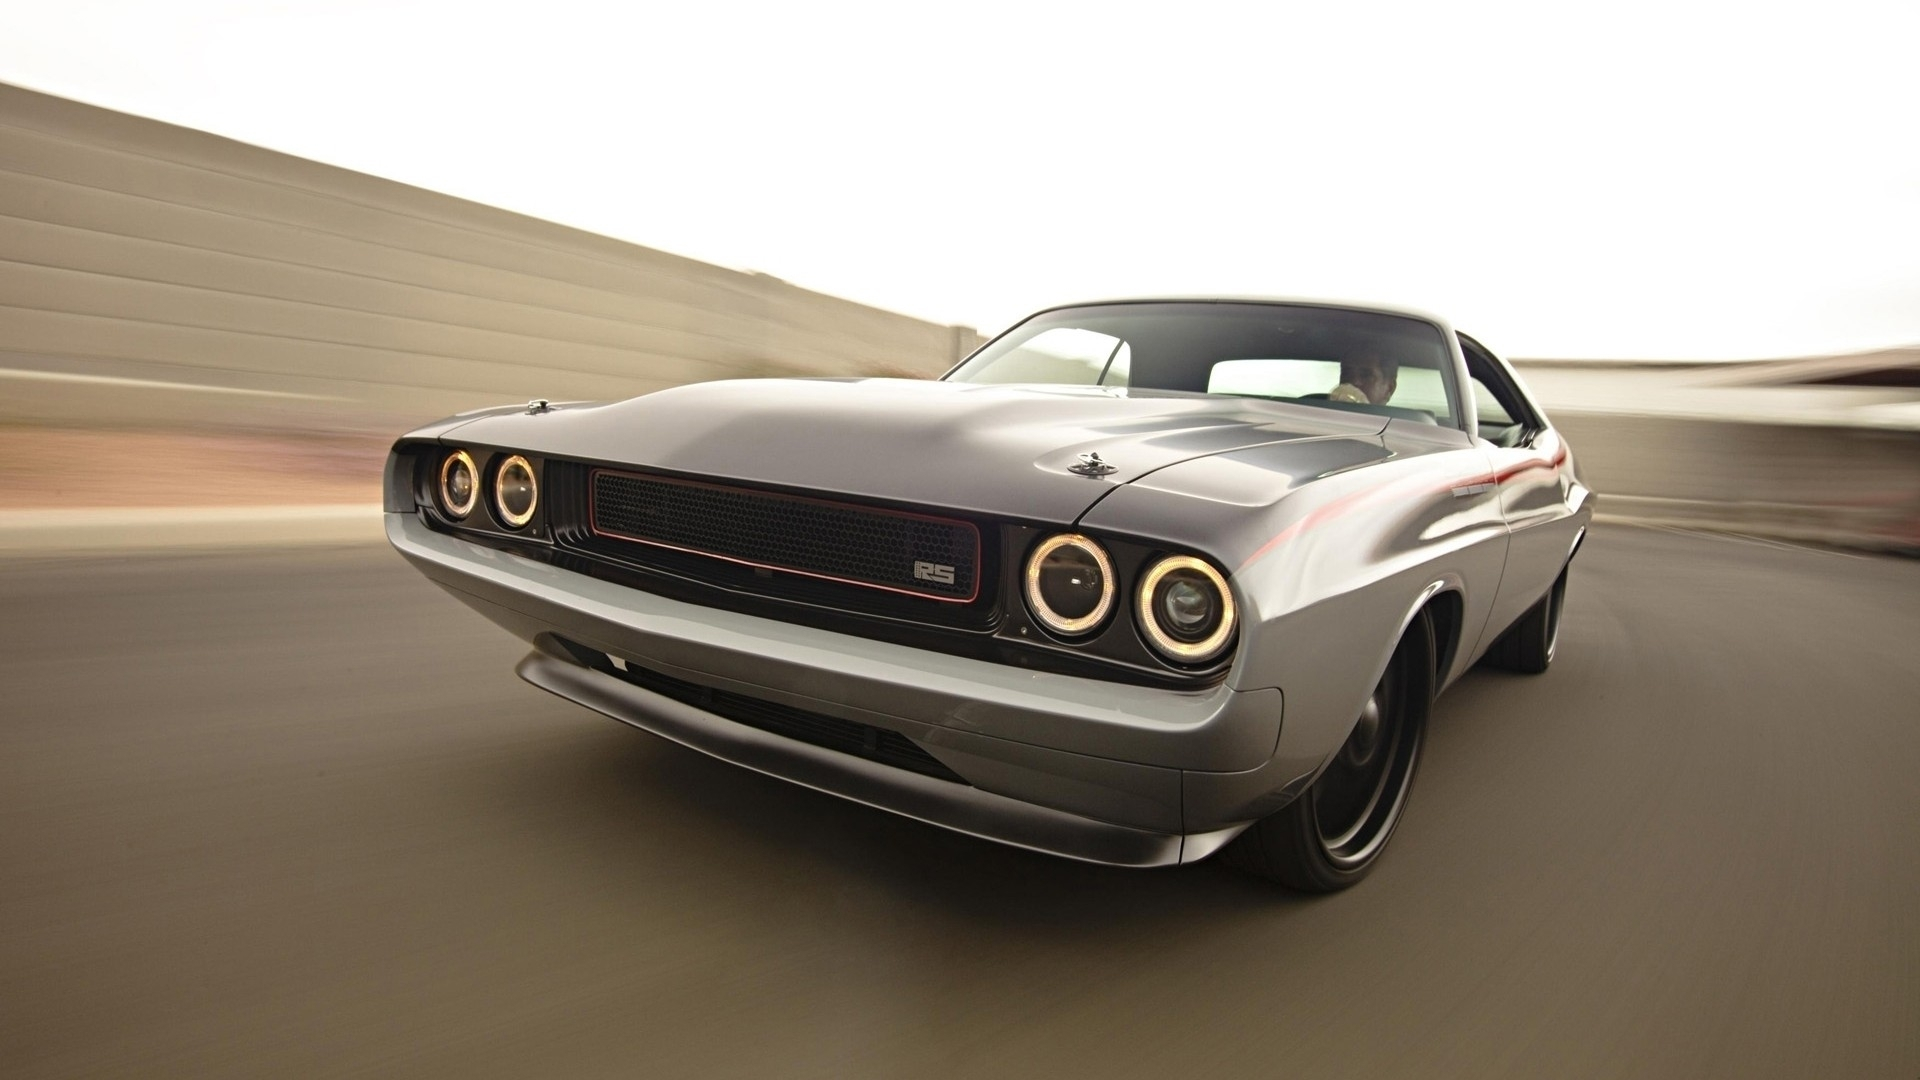 1920x1080 cars muscle cars vehicles 1920x1080 wallpaper Wallpaper 1920x1080